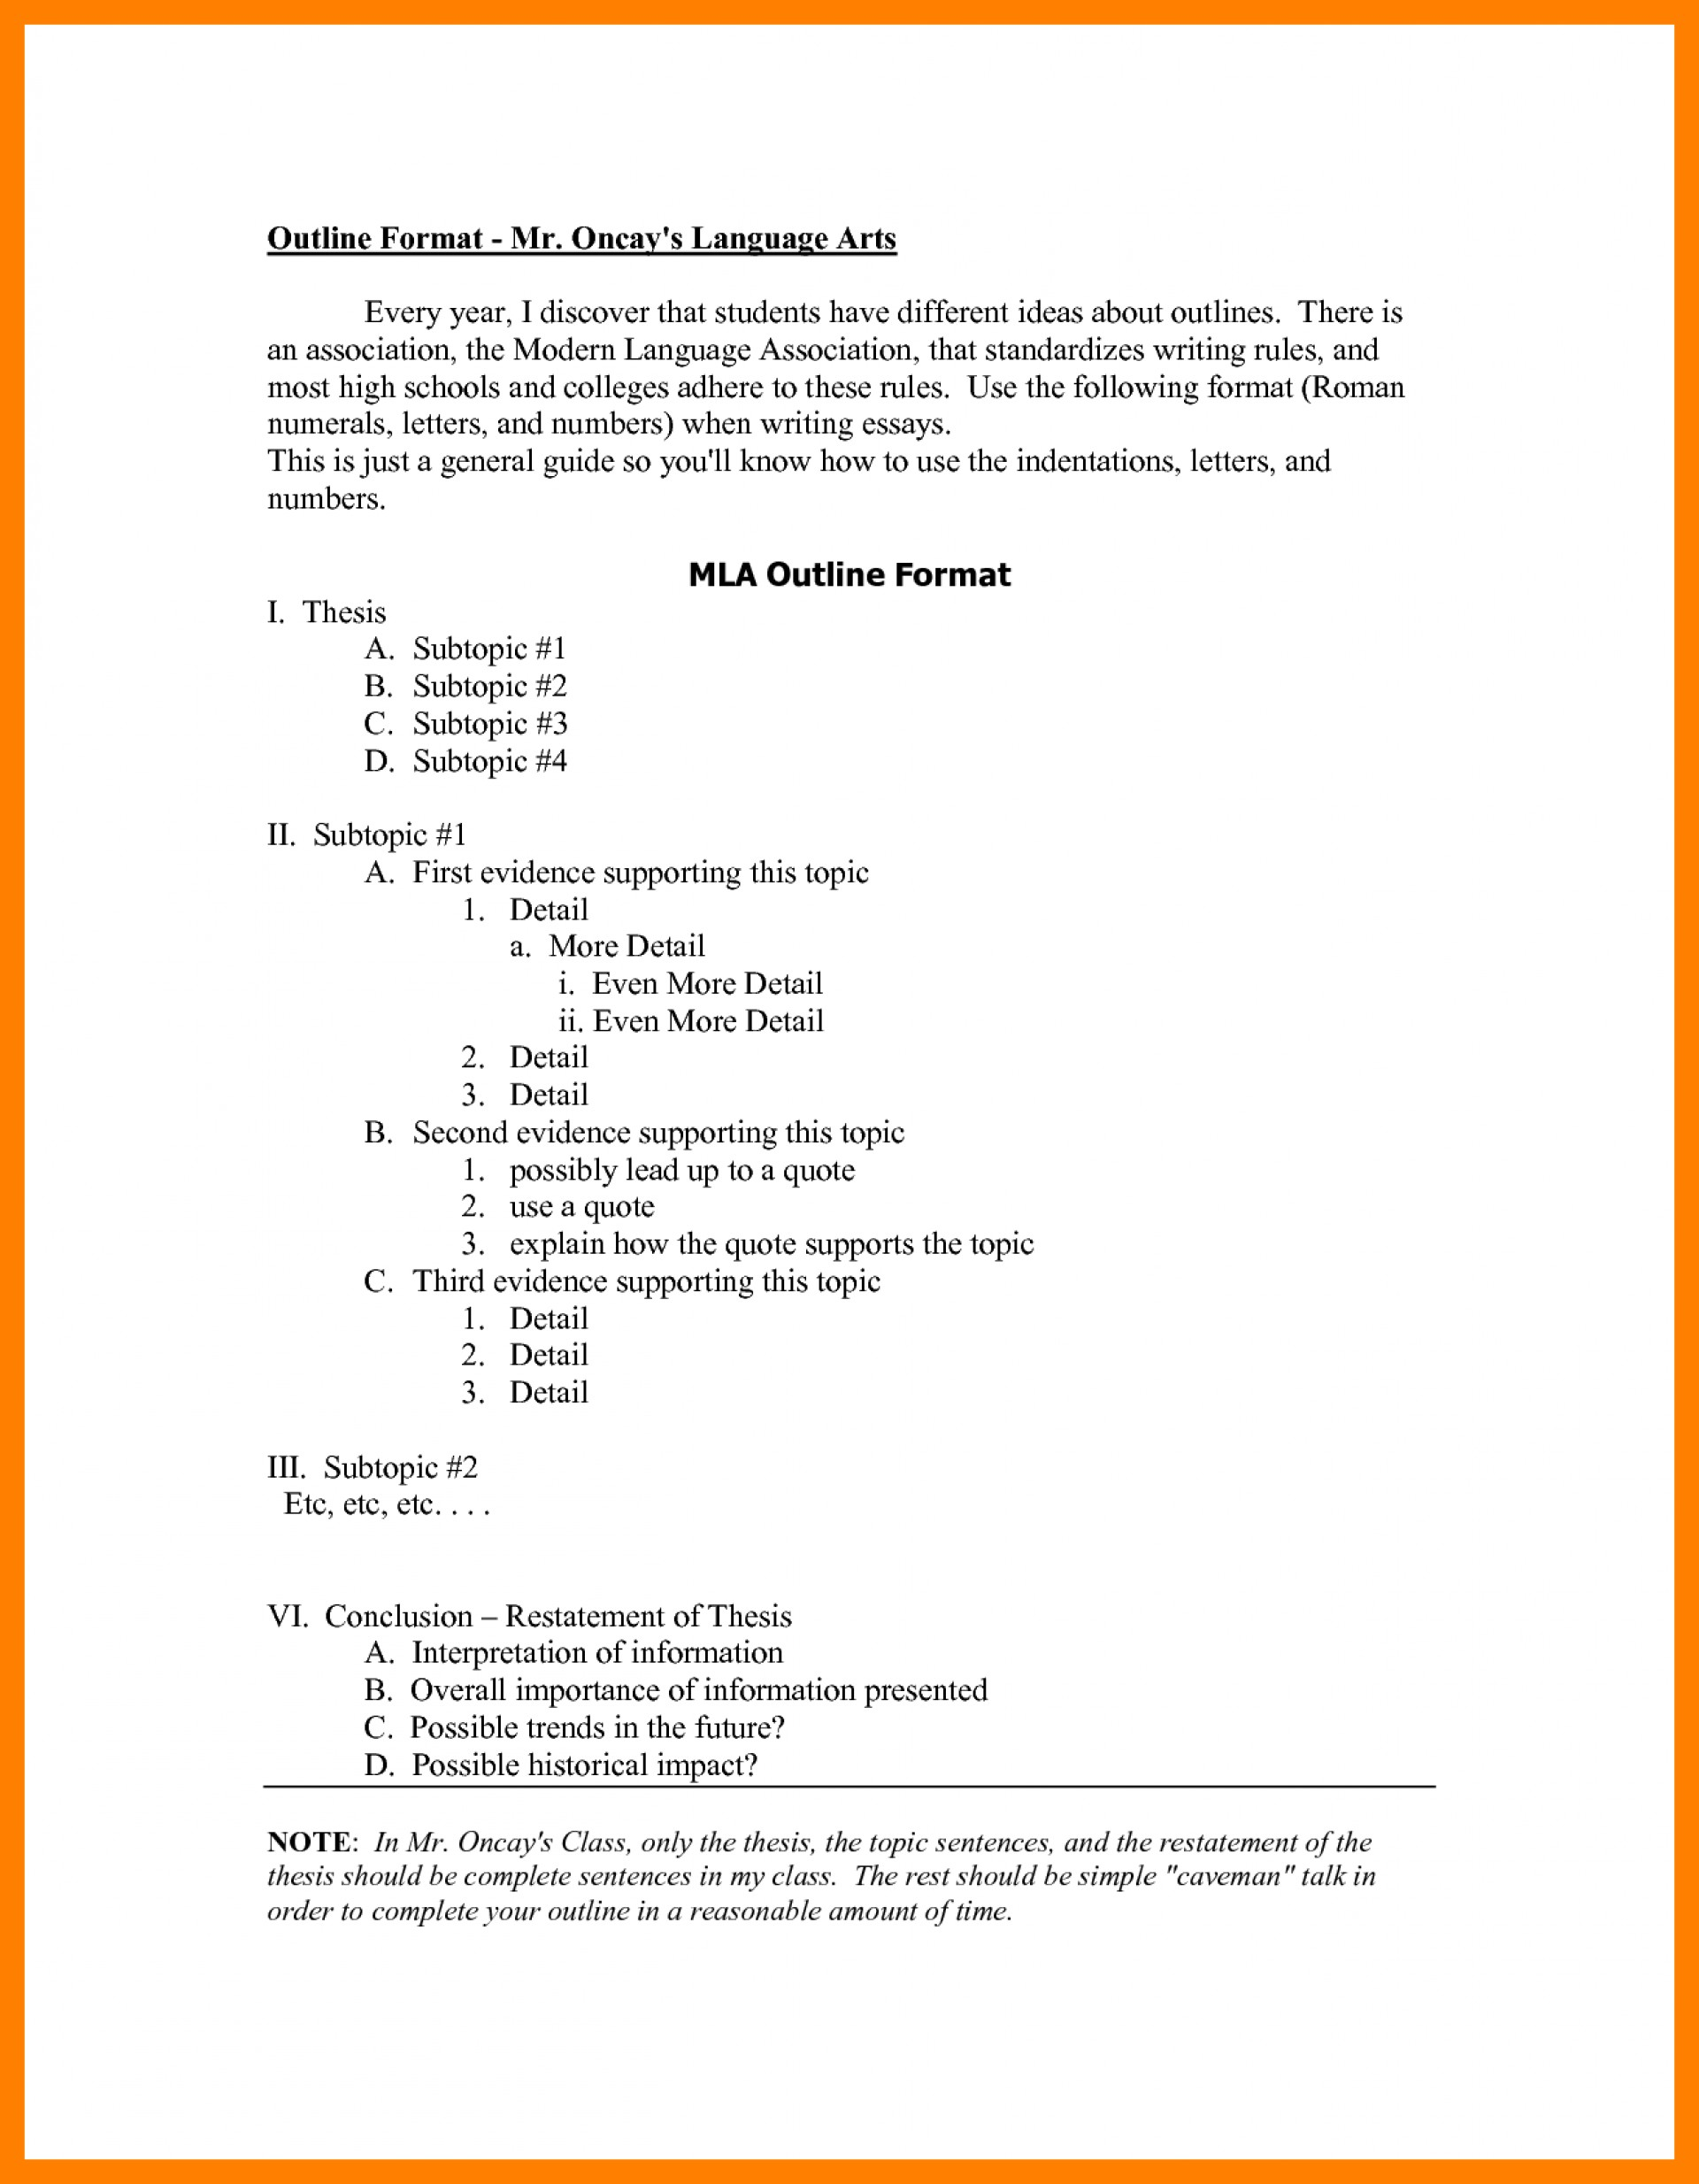 018 Research Paper High School Outline Format Mla Example Of Examples Stirring On Dropouts Pdf Seniors 1920